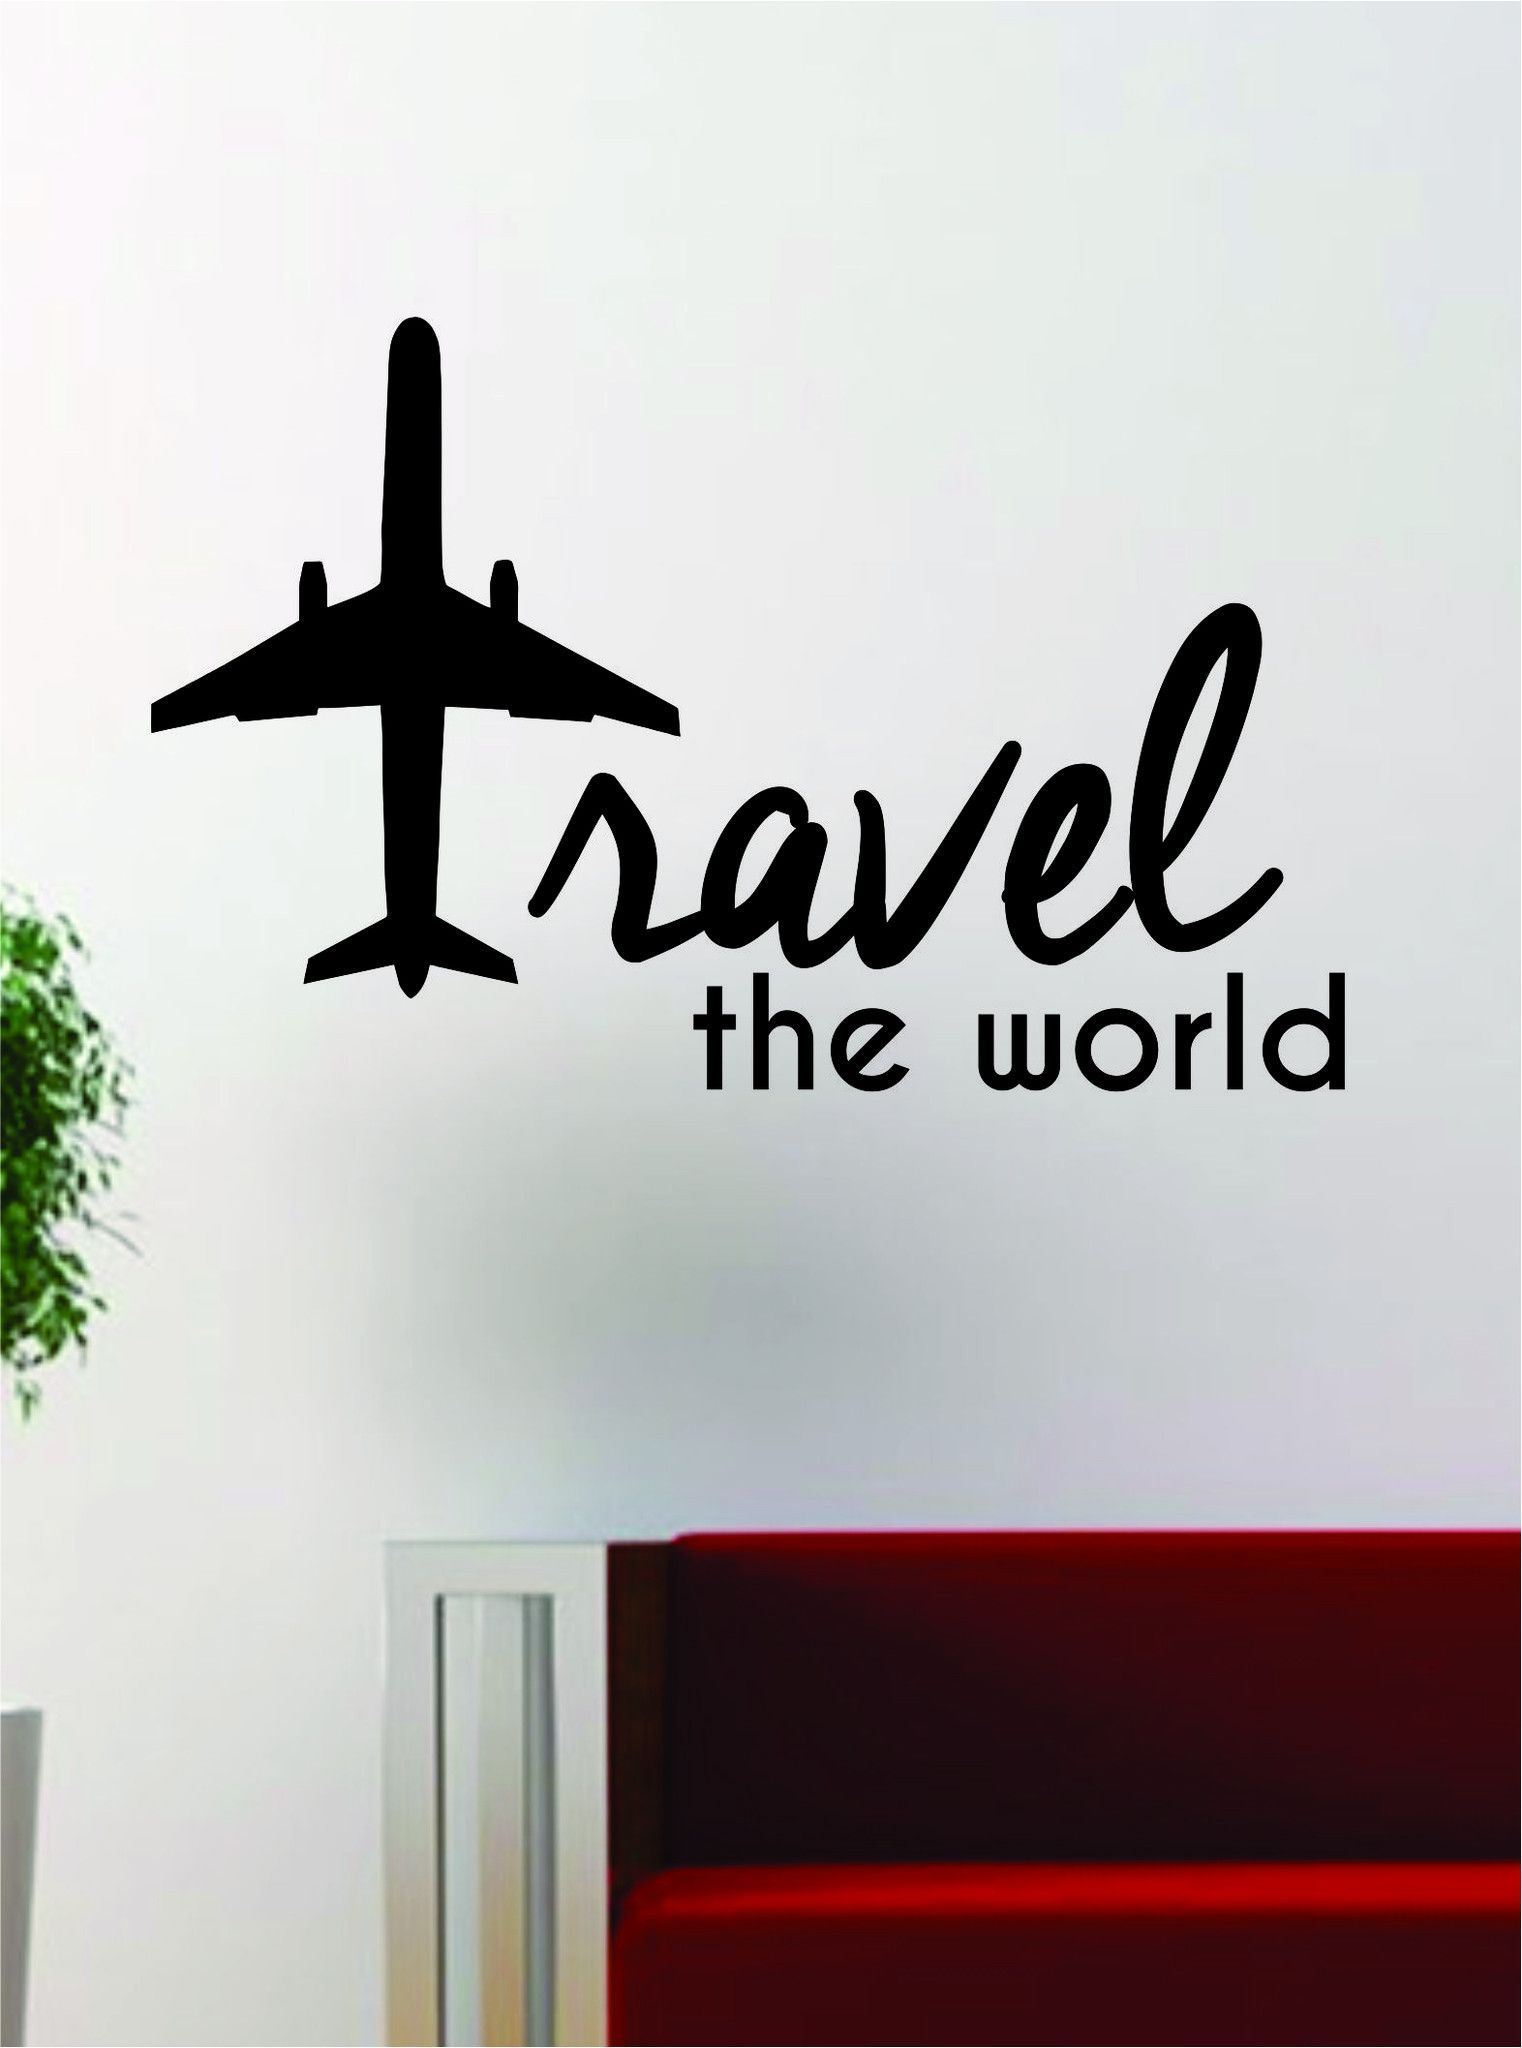 Travel the world airplane quote decal sticker wall vinyl decor art travel the world airplane quote decal sticker wall vinyl decor art adventure amipublicfo Image collections